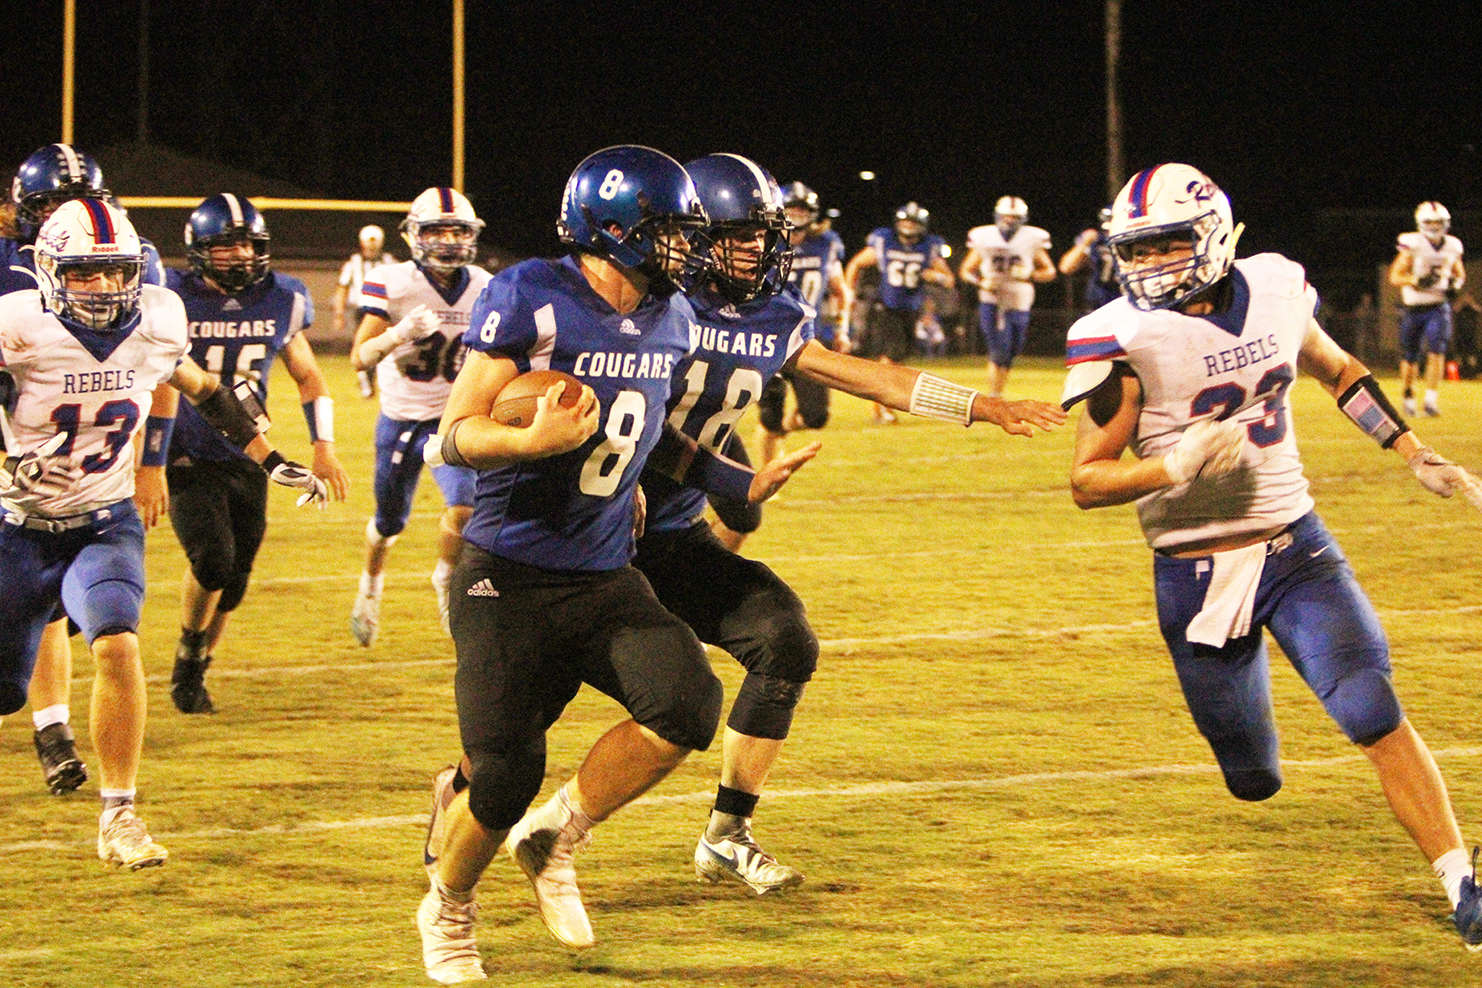 Cougars rally late against South Spencer